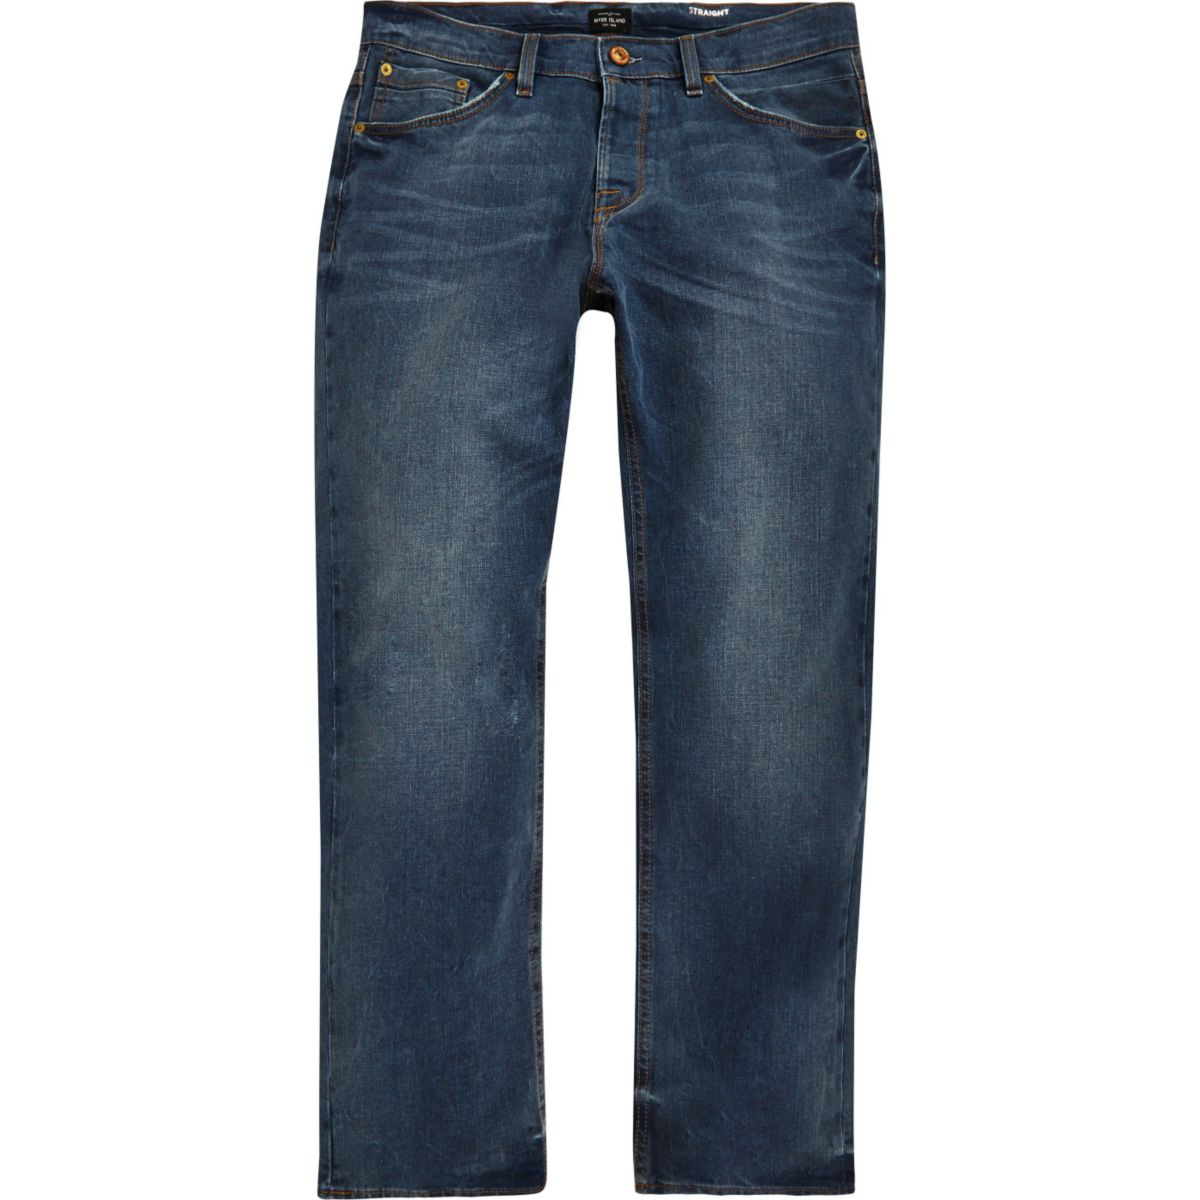 Dean – Straight Jeans in Mittelblau